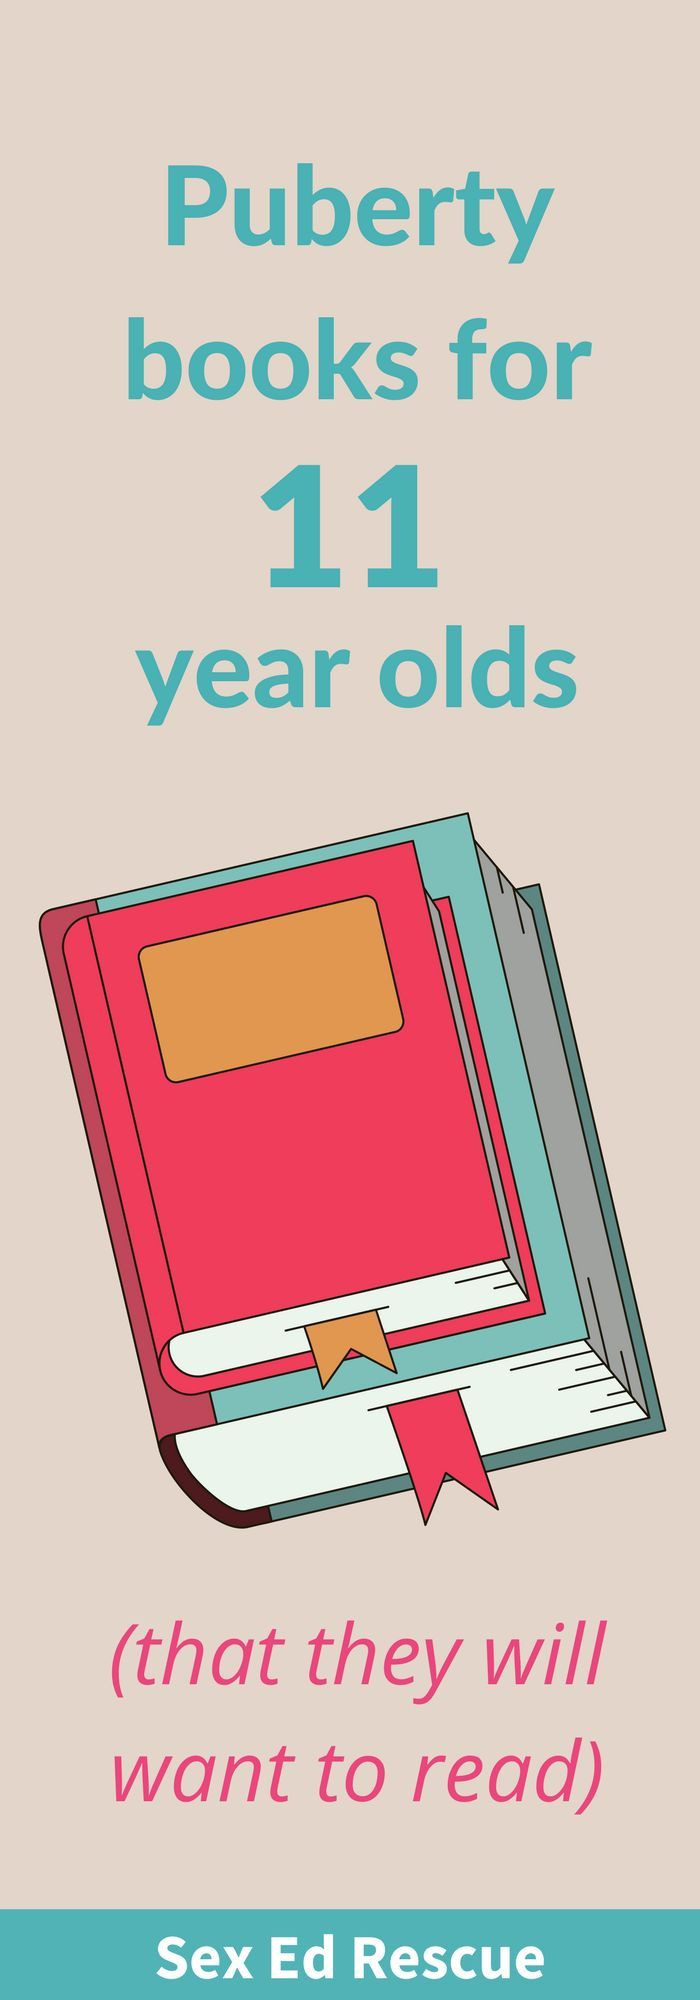 A parent's guide to the best puberty books for 11 year old boys and girls.